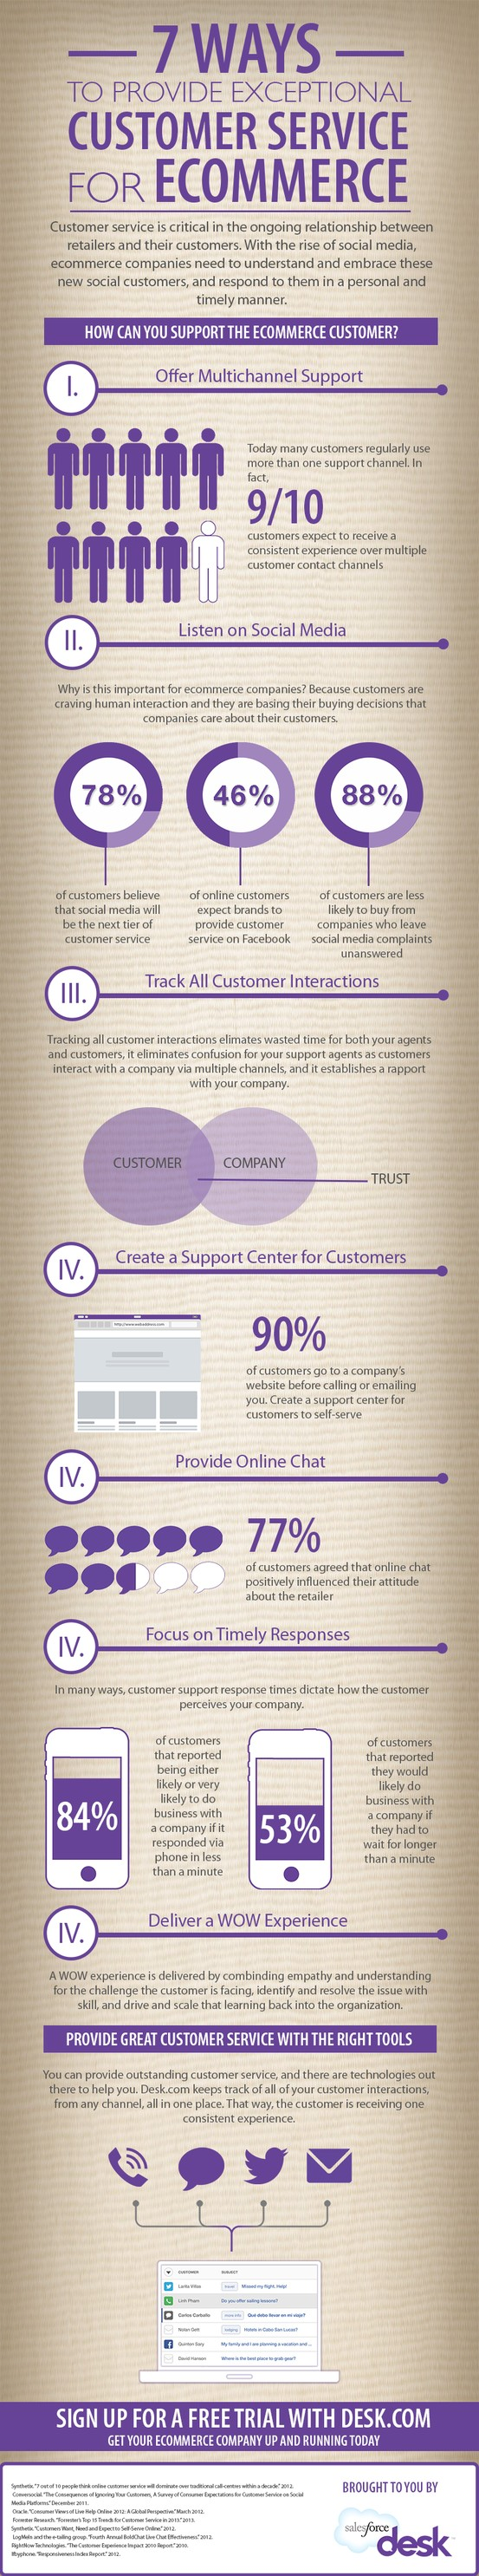 How to Provide Exceptional Customer Service for Ecommerce #marketing #ecommerce #smallbusiness